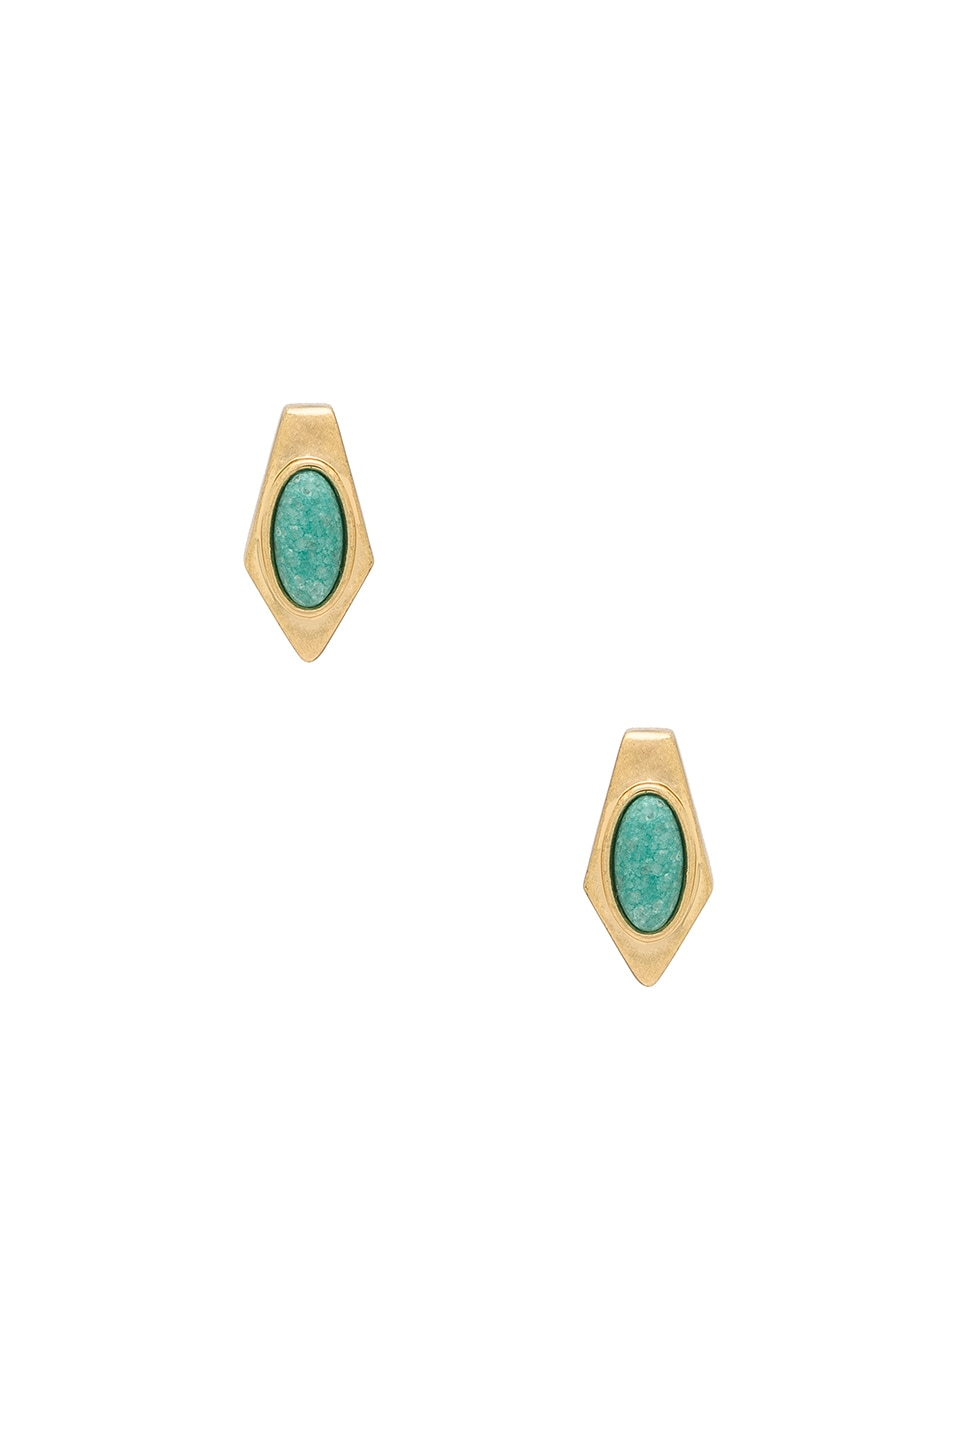 House of Harlow 1960 Valda Stud Earrings in Gold & Brazilian Amazonite